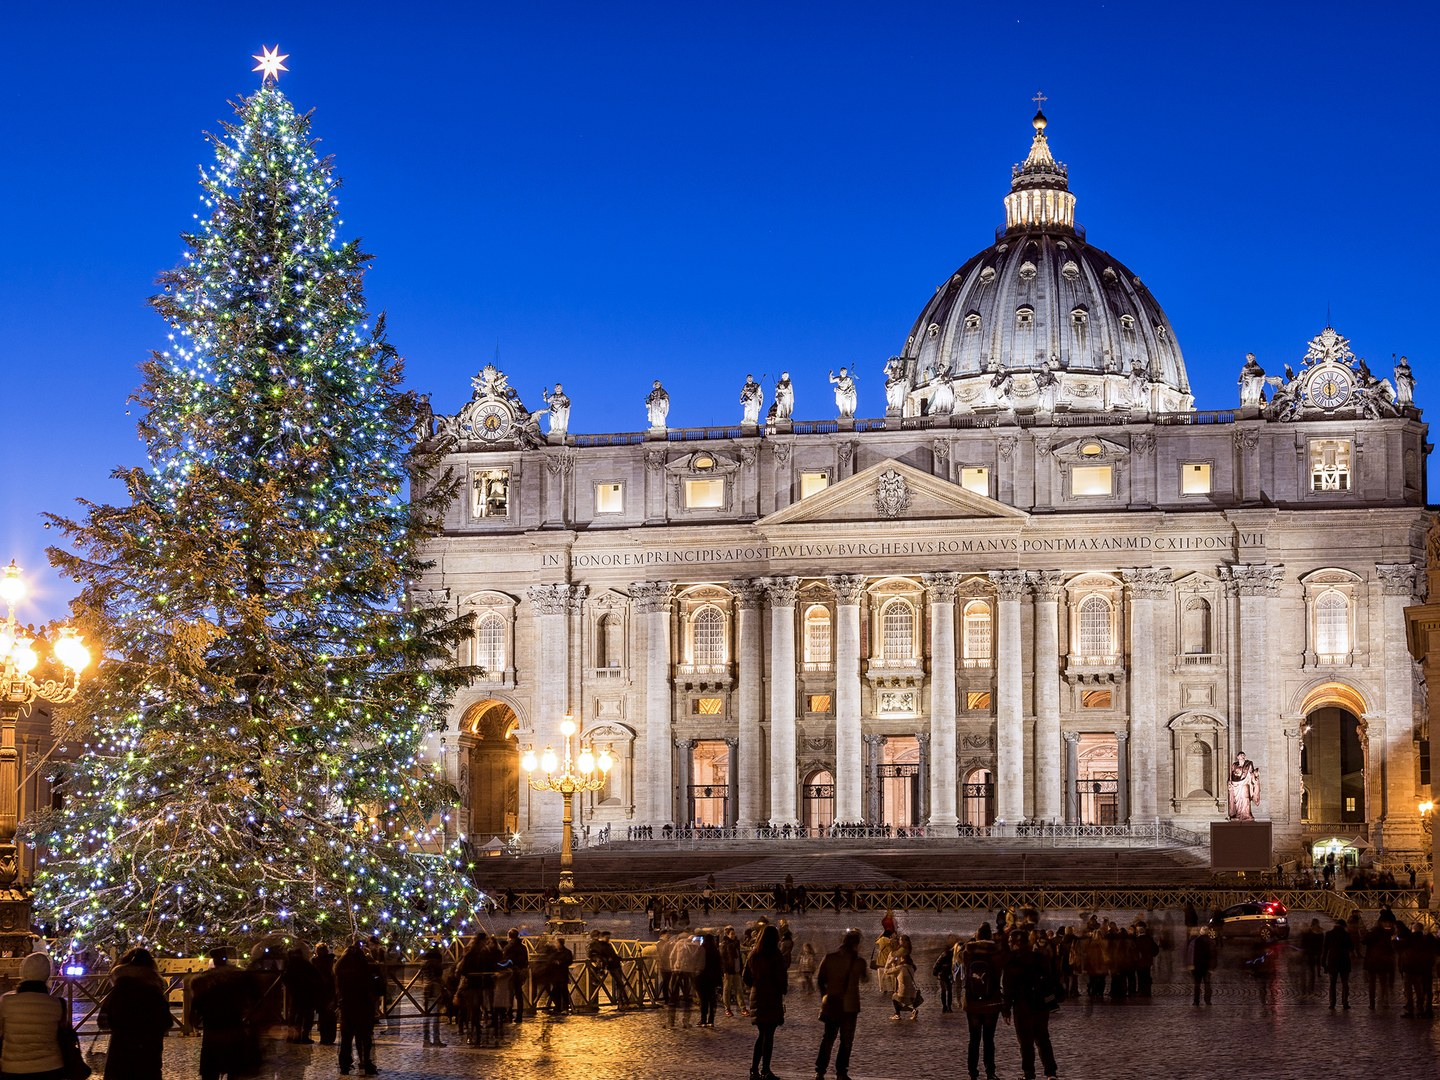 st-peters-basilica-vatican-city